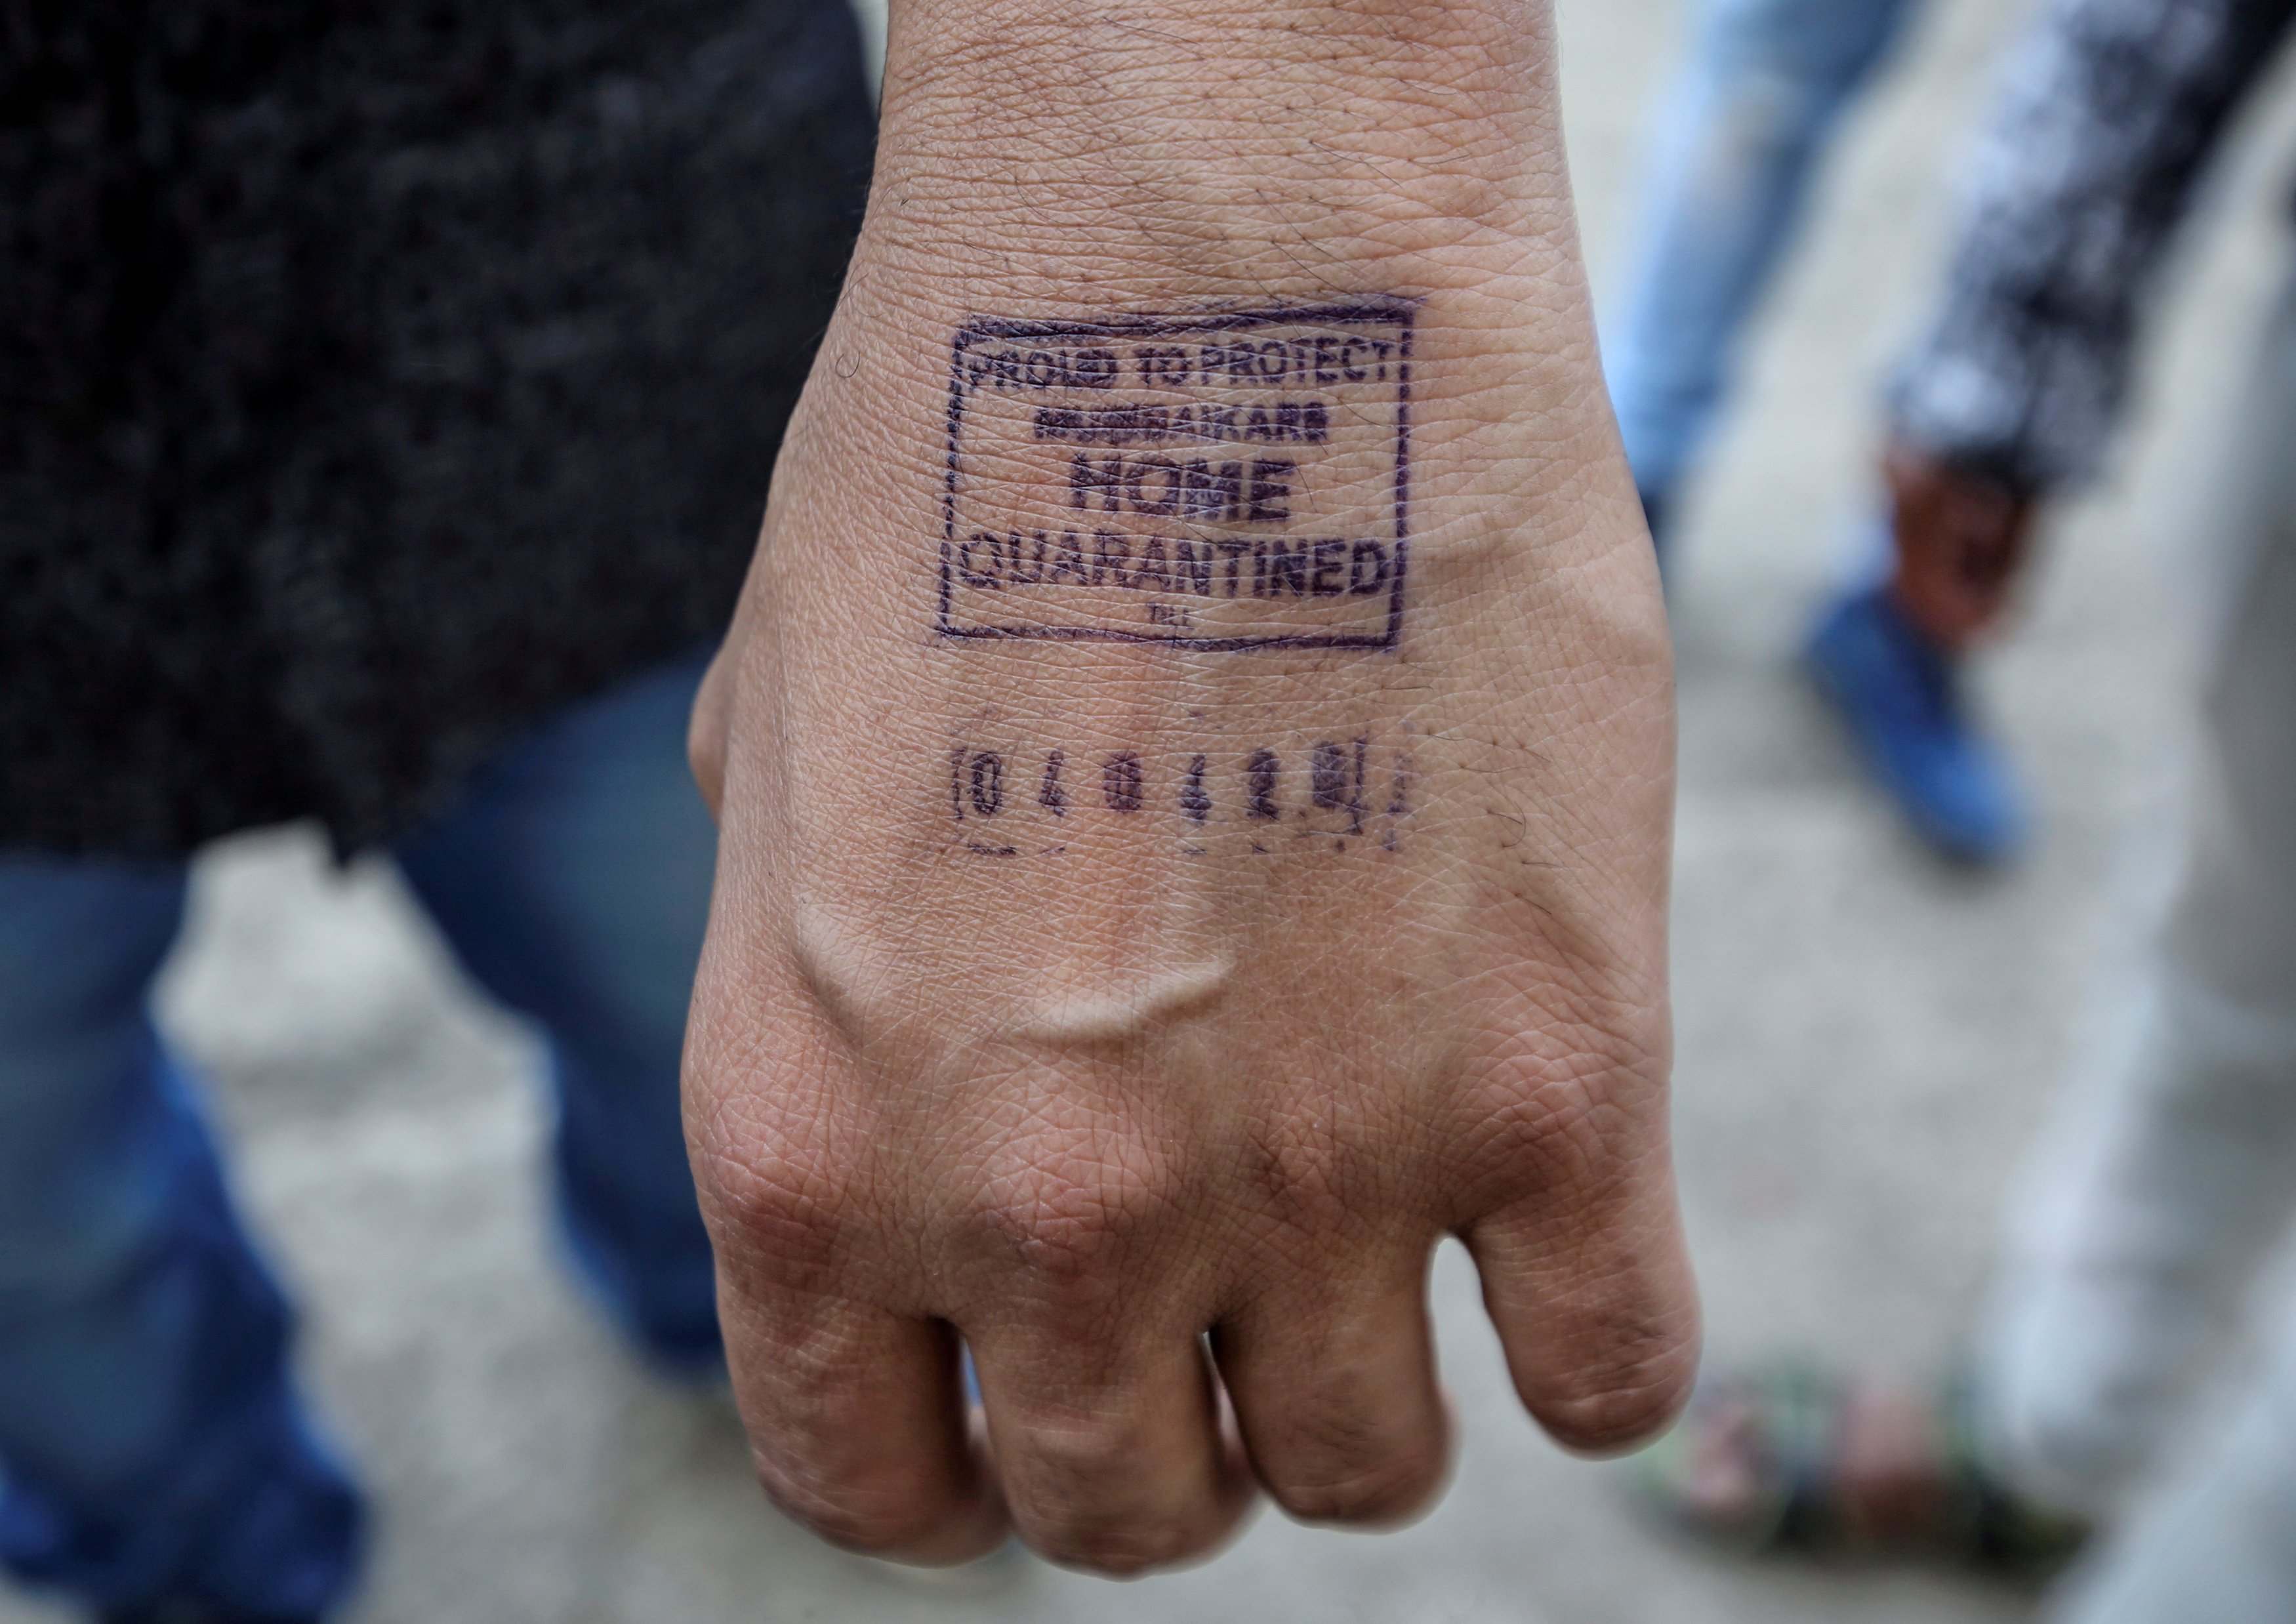 FILE - A man shows his hand which was stamped by airport authorities as he was advised for home quarantine after he arrived from overseas, amid coronavirus disease (COVID-19) fears, in Mumbai, India, March 21, 2020. Photo: Reuters